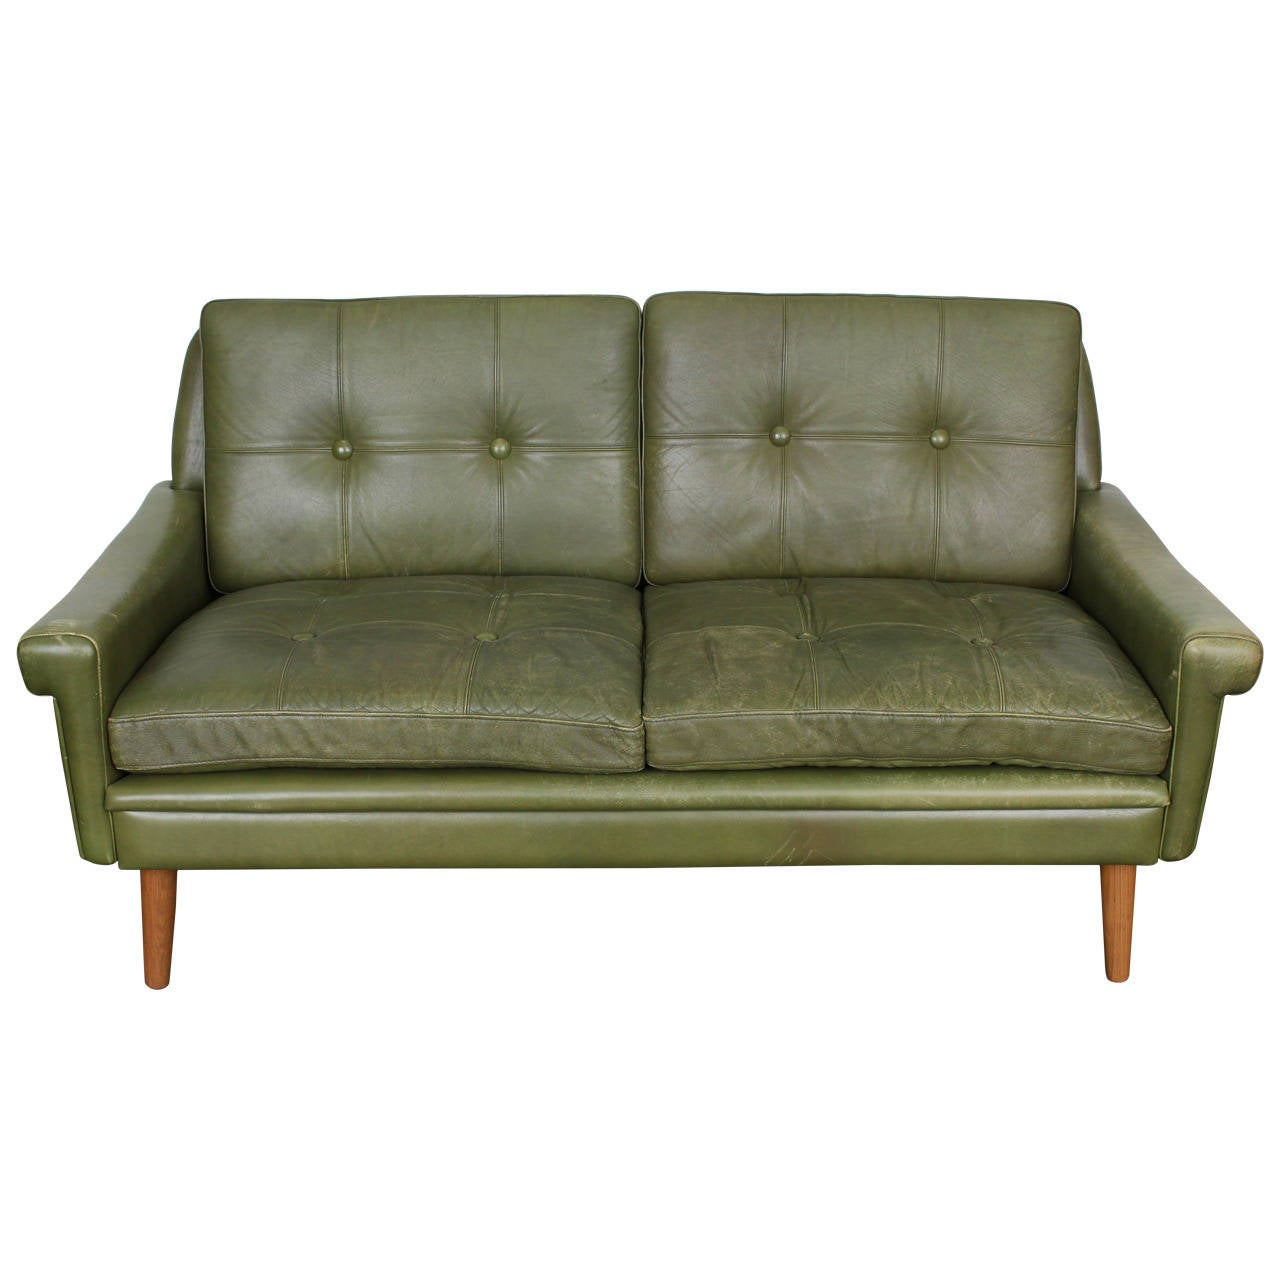 Mid Century Modern Green Leather Loveseat By Skippers